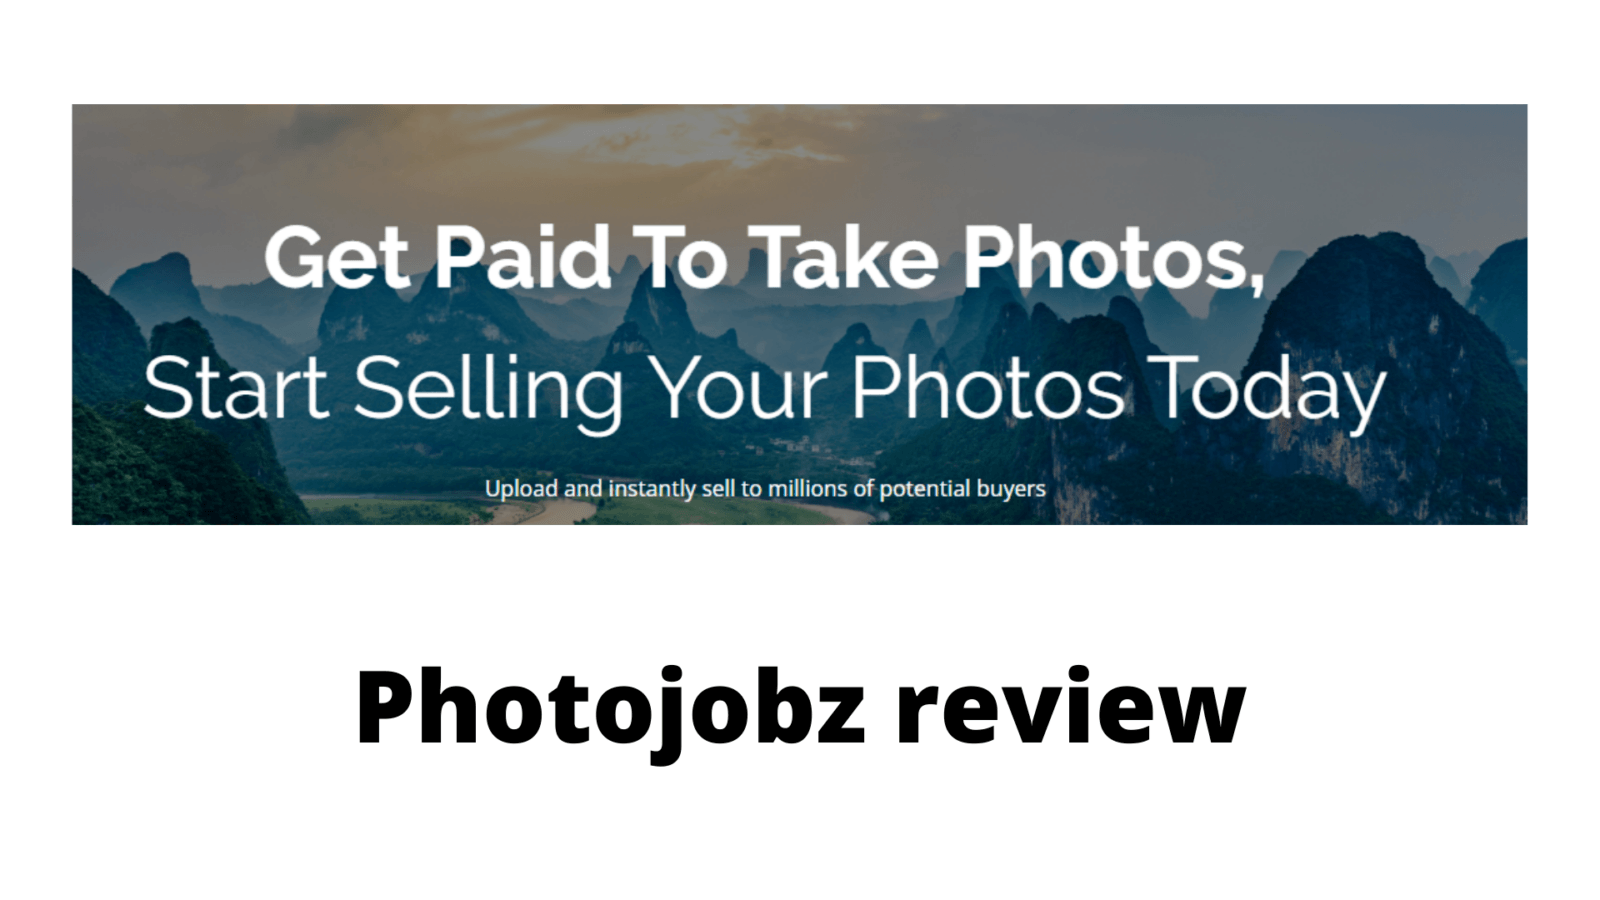 photojobz review